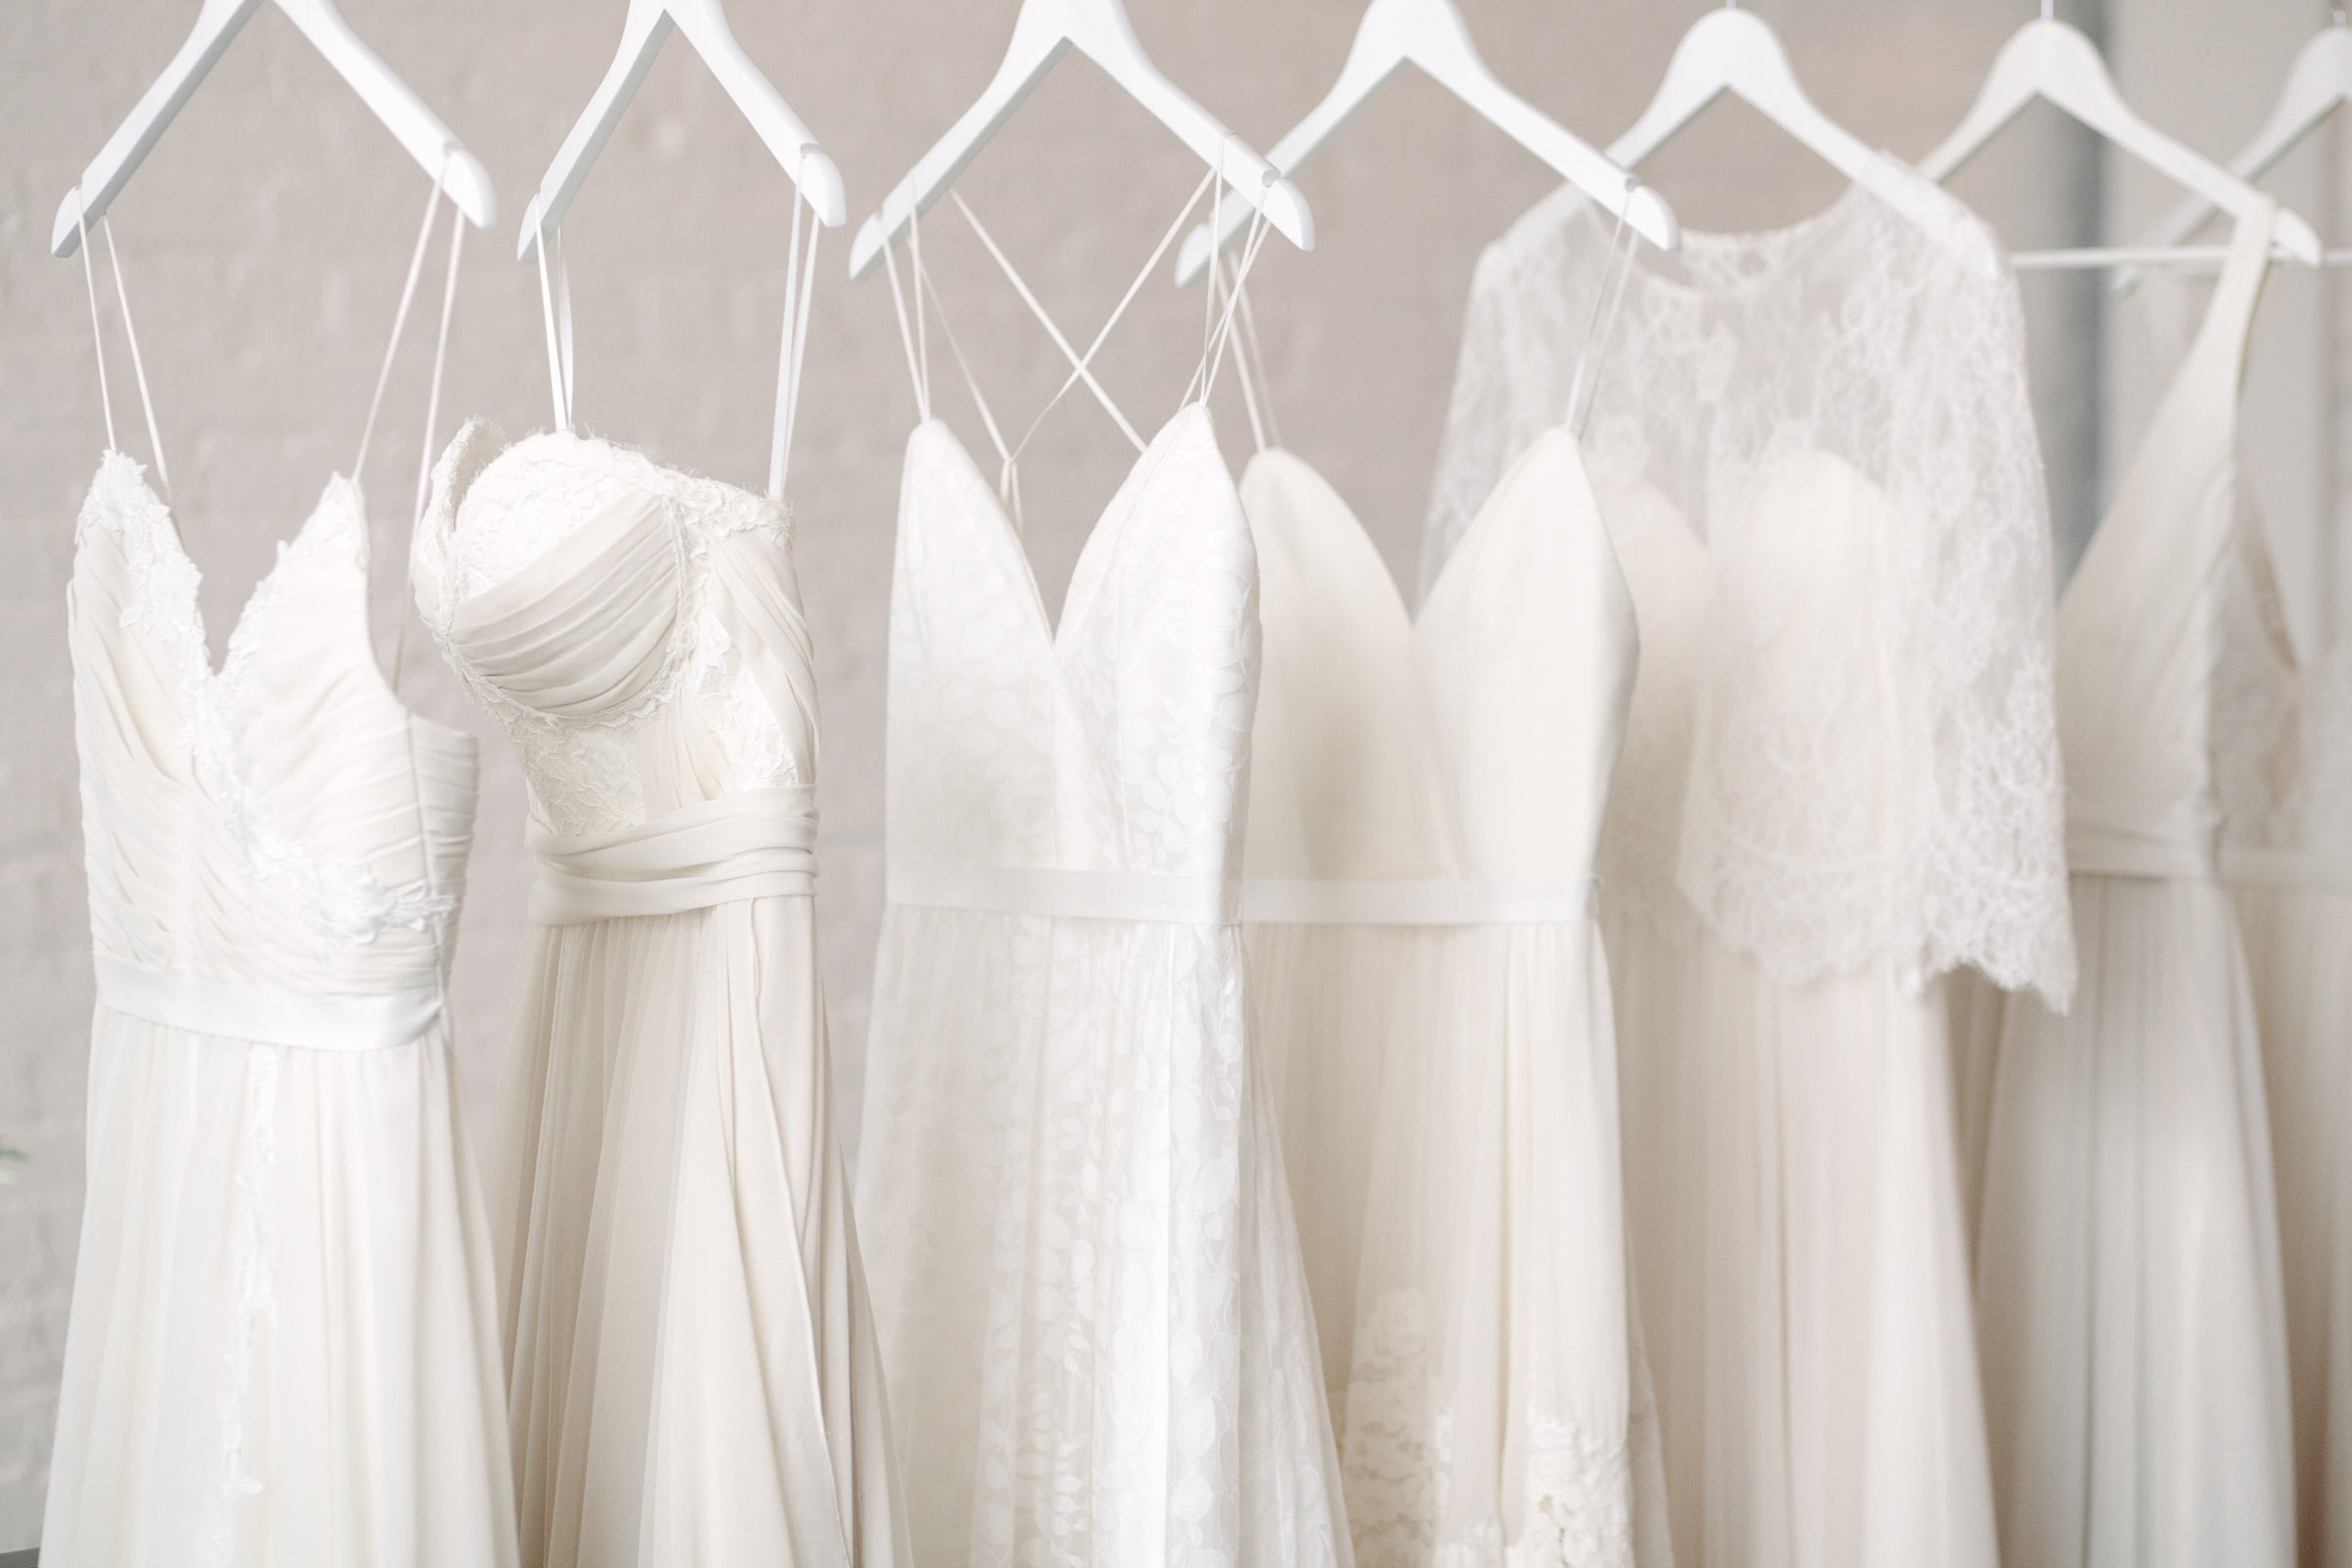 Truvelle Wedding Dresses Handmade In Vancouver Canada